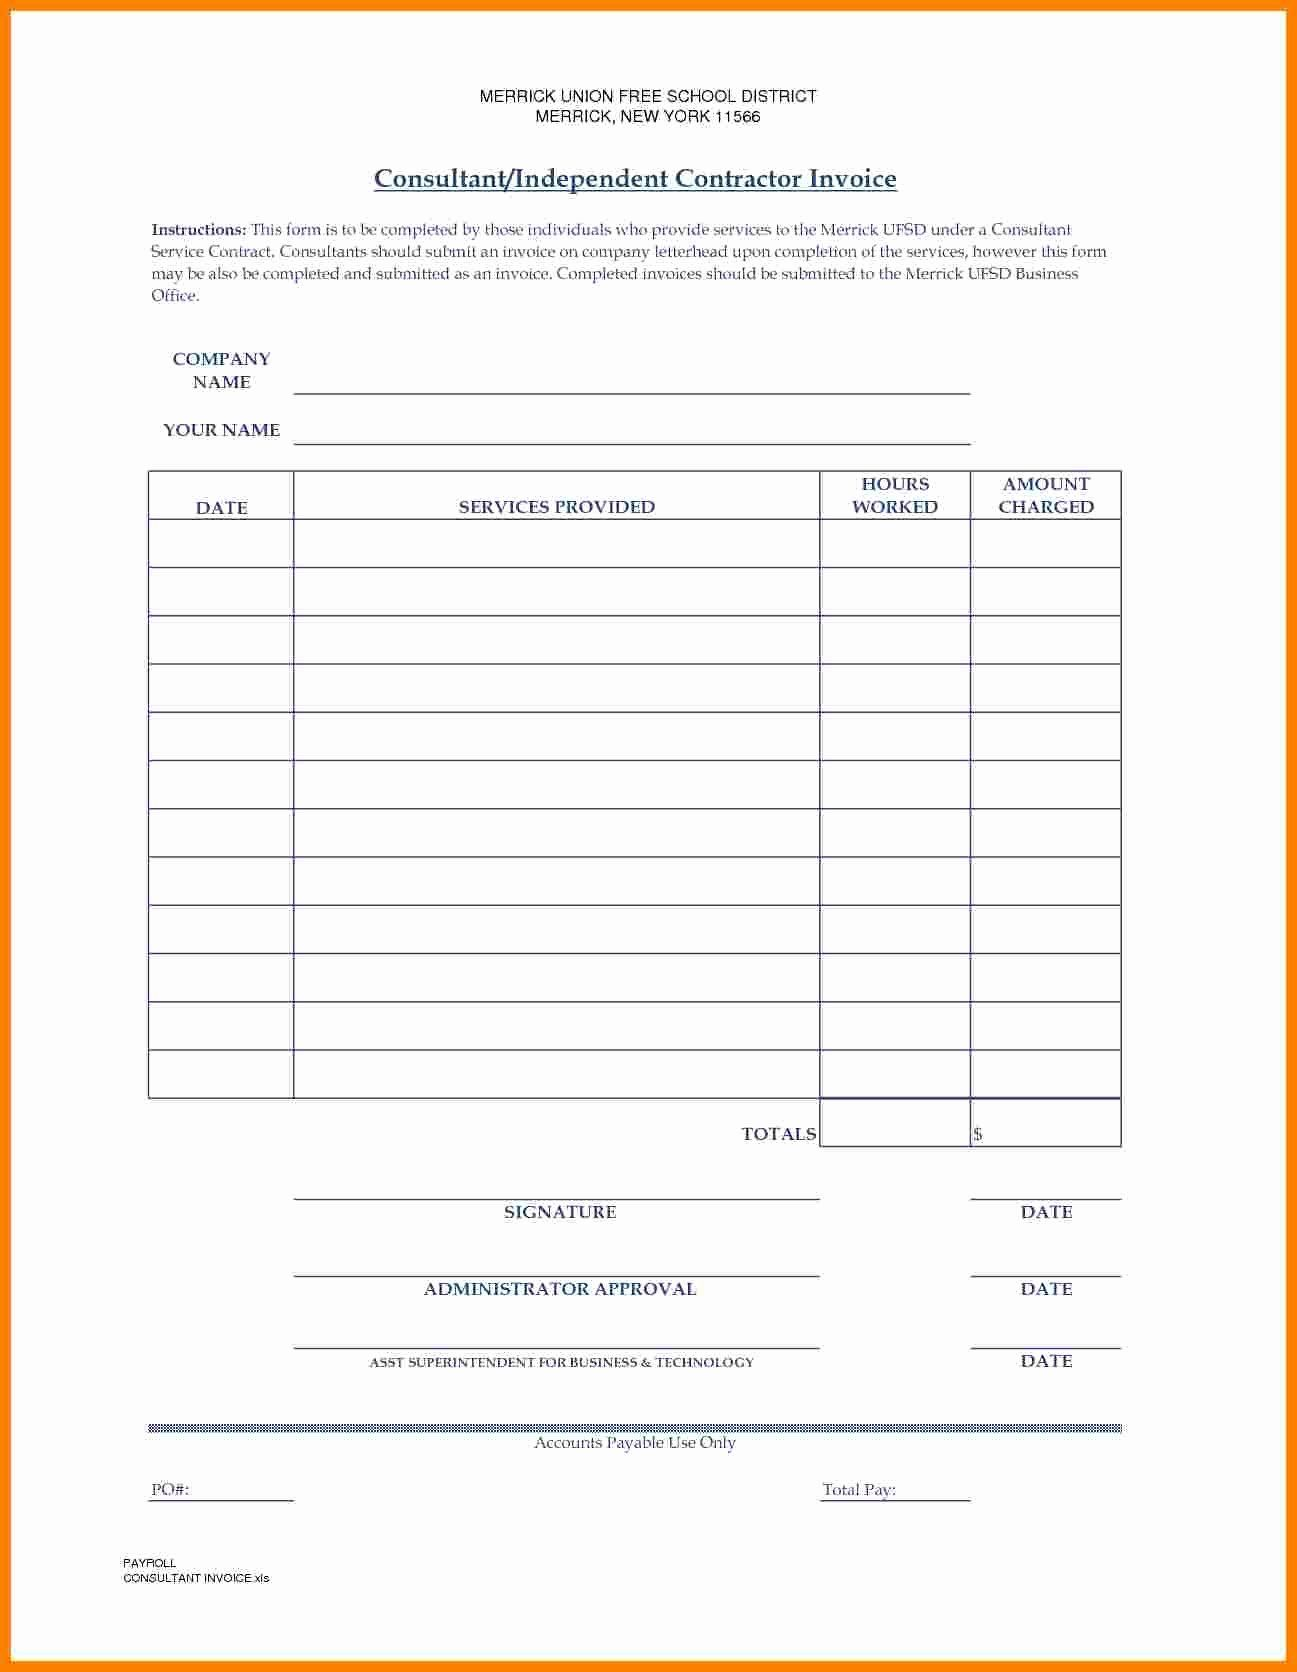 Independent Contractor Invoice Template Free Beautiful 7 Independent Contractor Invoice Invoice Template Estimate Template Excel Budget Template